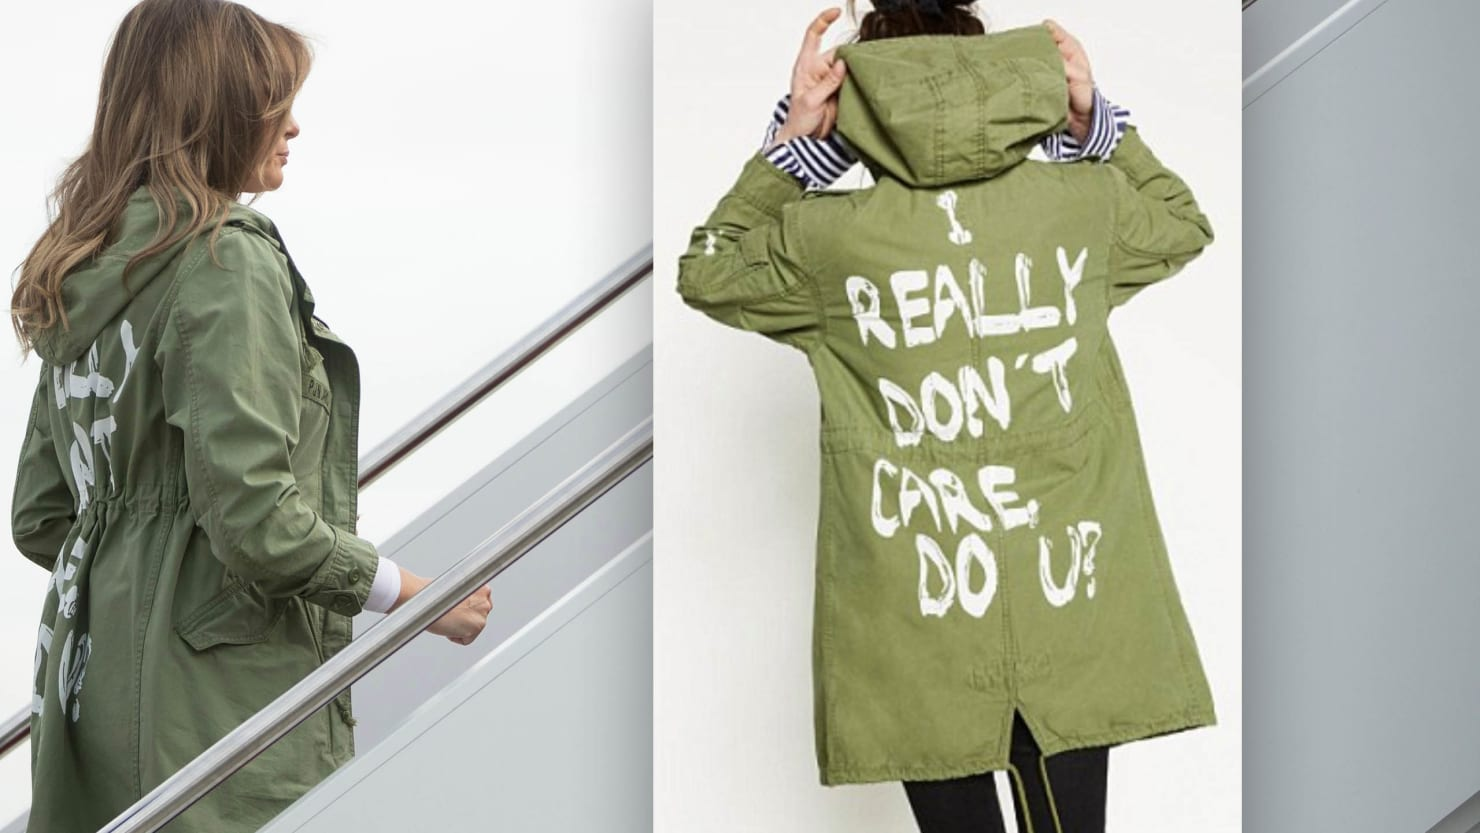 Melania jacket: I don't care do you?